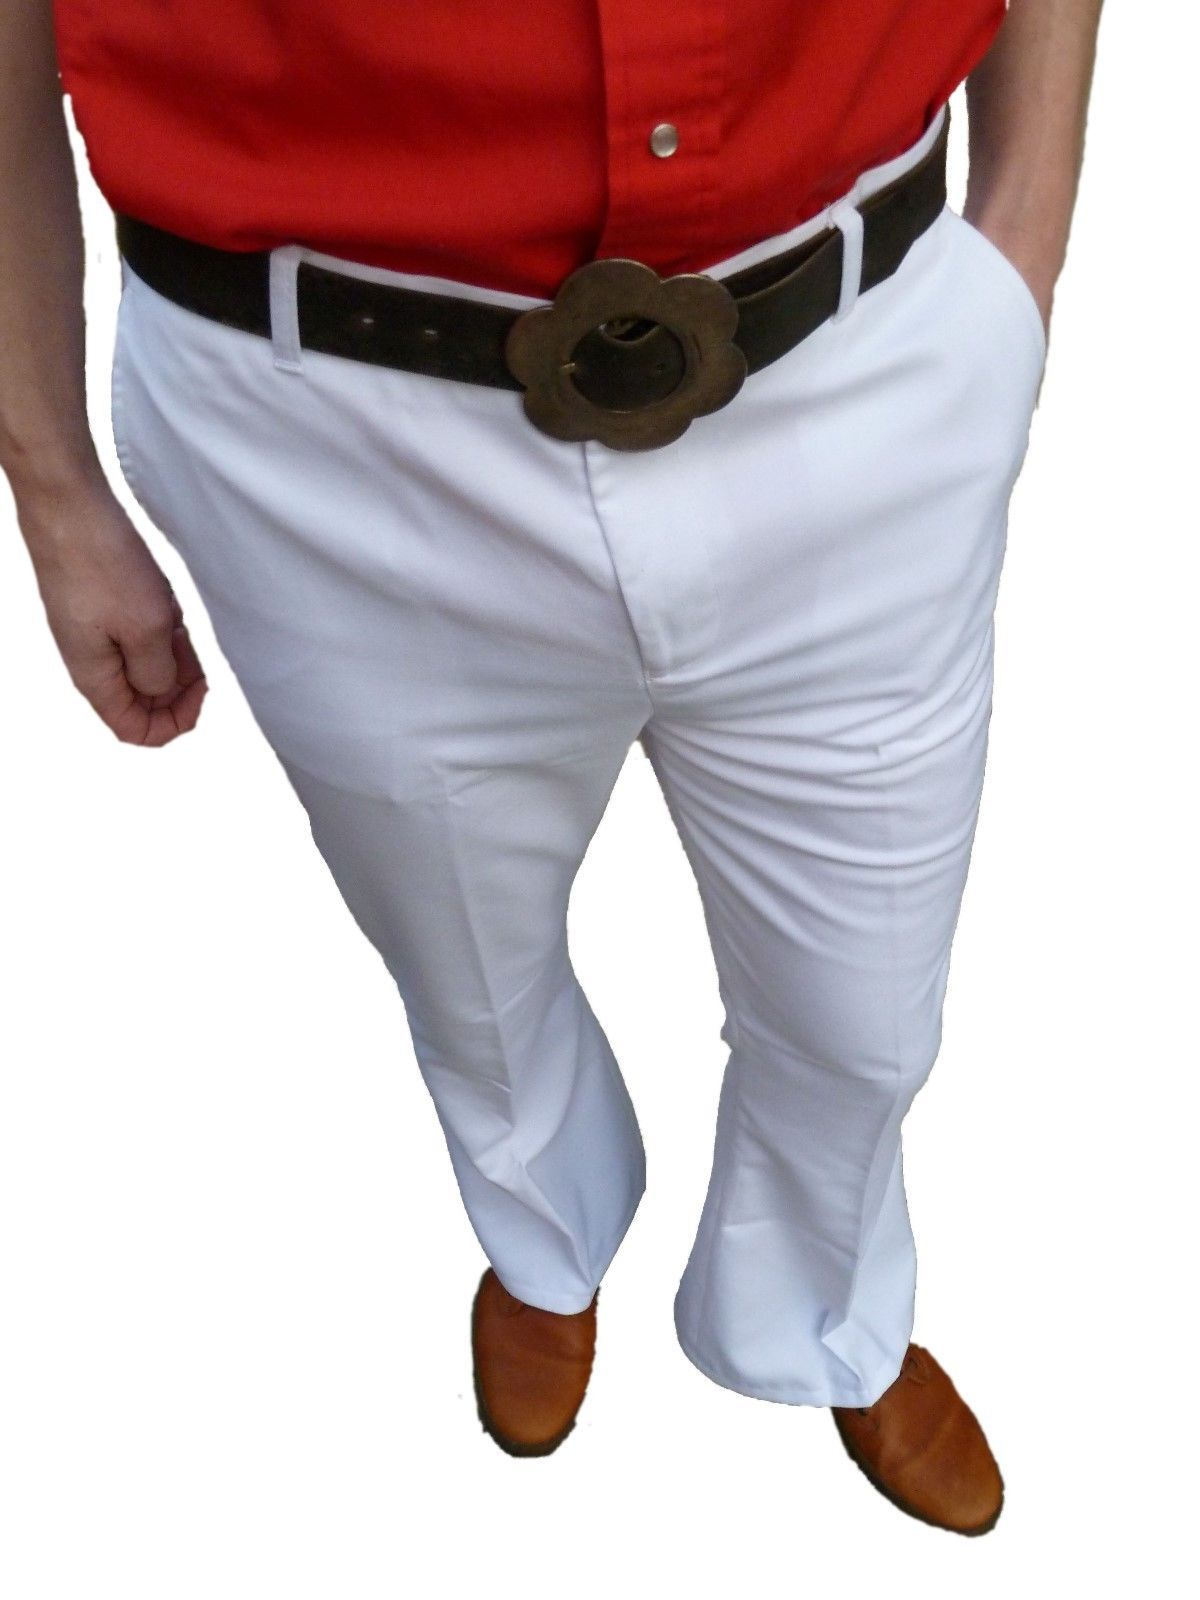 Adult Mens 70s Funky White Disco Bell Bottom Pants Costume. by Leg Avenue. $ - $ $ 20 $ 39 95 Prime. FREE Shipping on eligible orders. Some sizes/colors are Prime eligible. out of 5 stars Product Features Color: white. Vibrant Women's Juniors Bell Bottom .